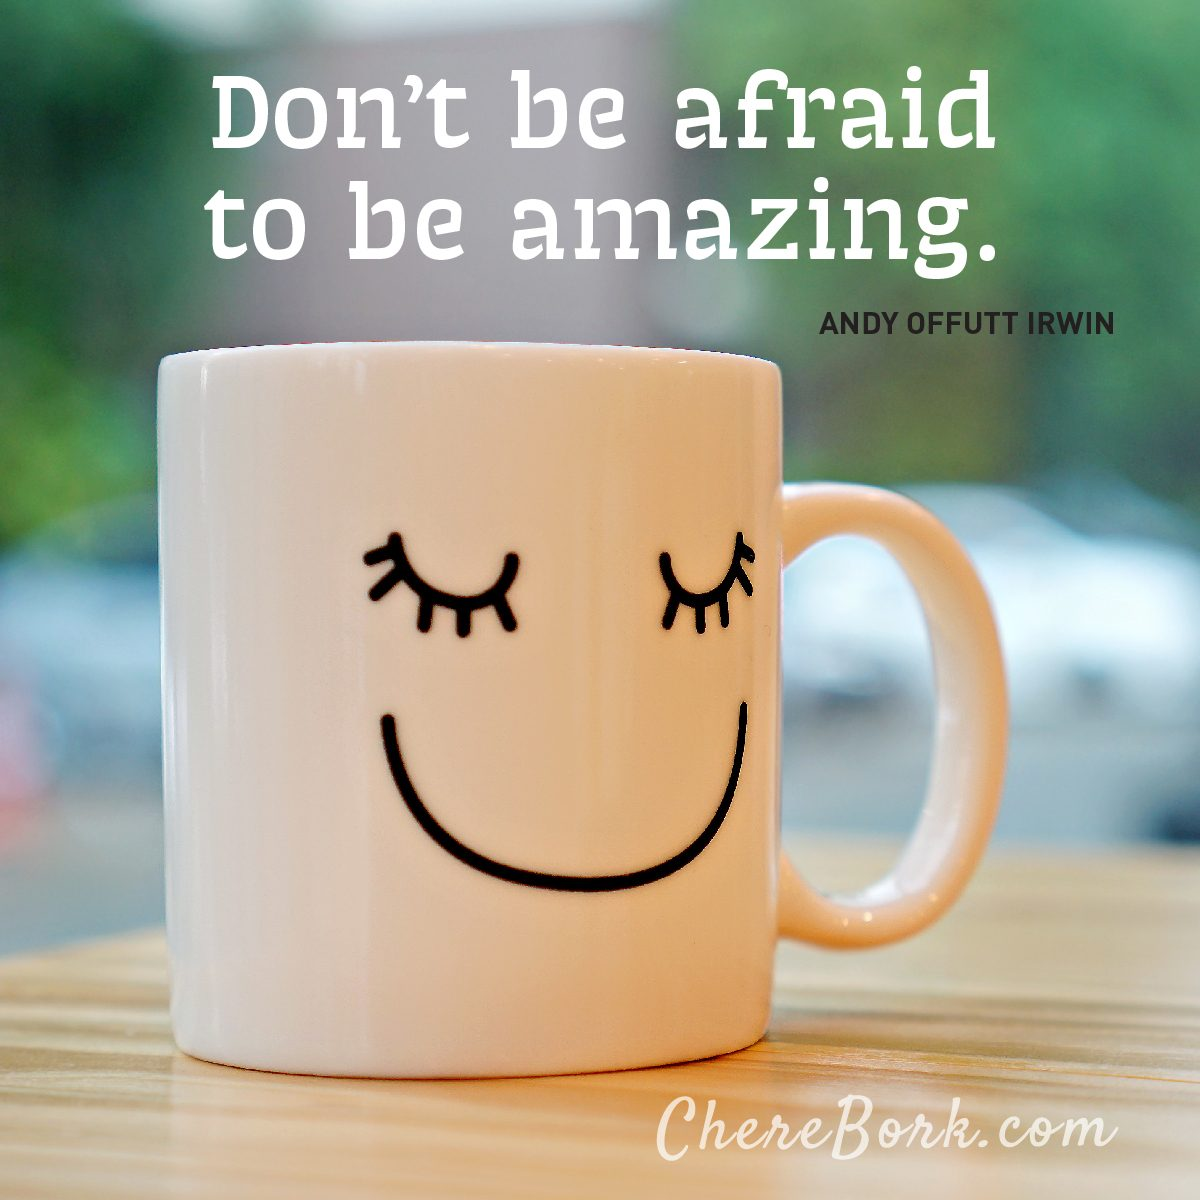 Don't be afraid to be amazing. - Andy Offutt Erwin